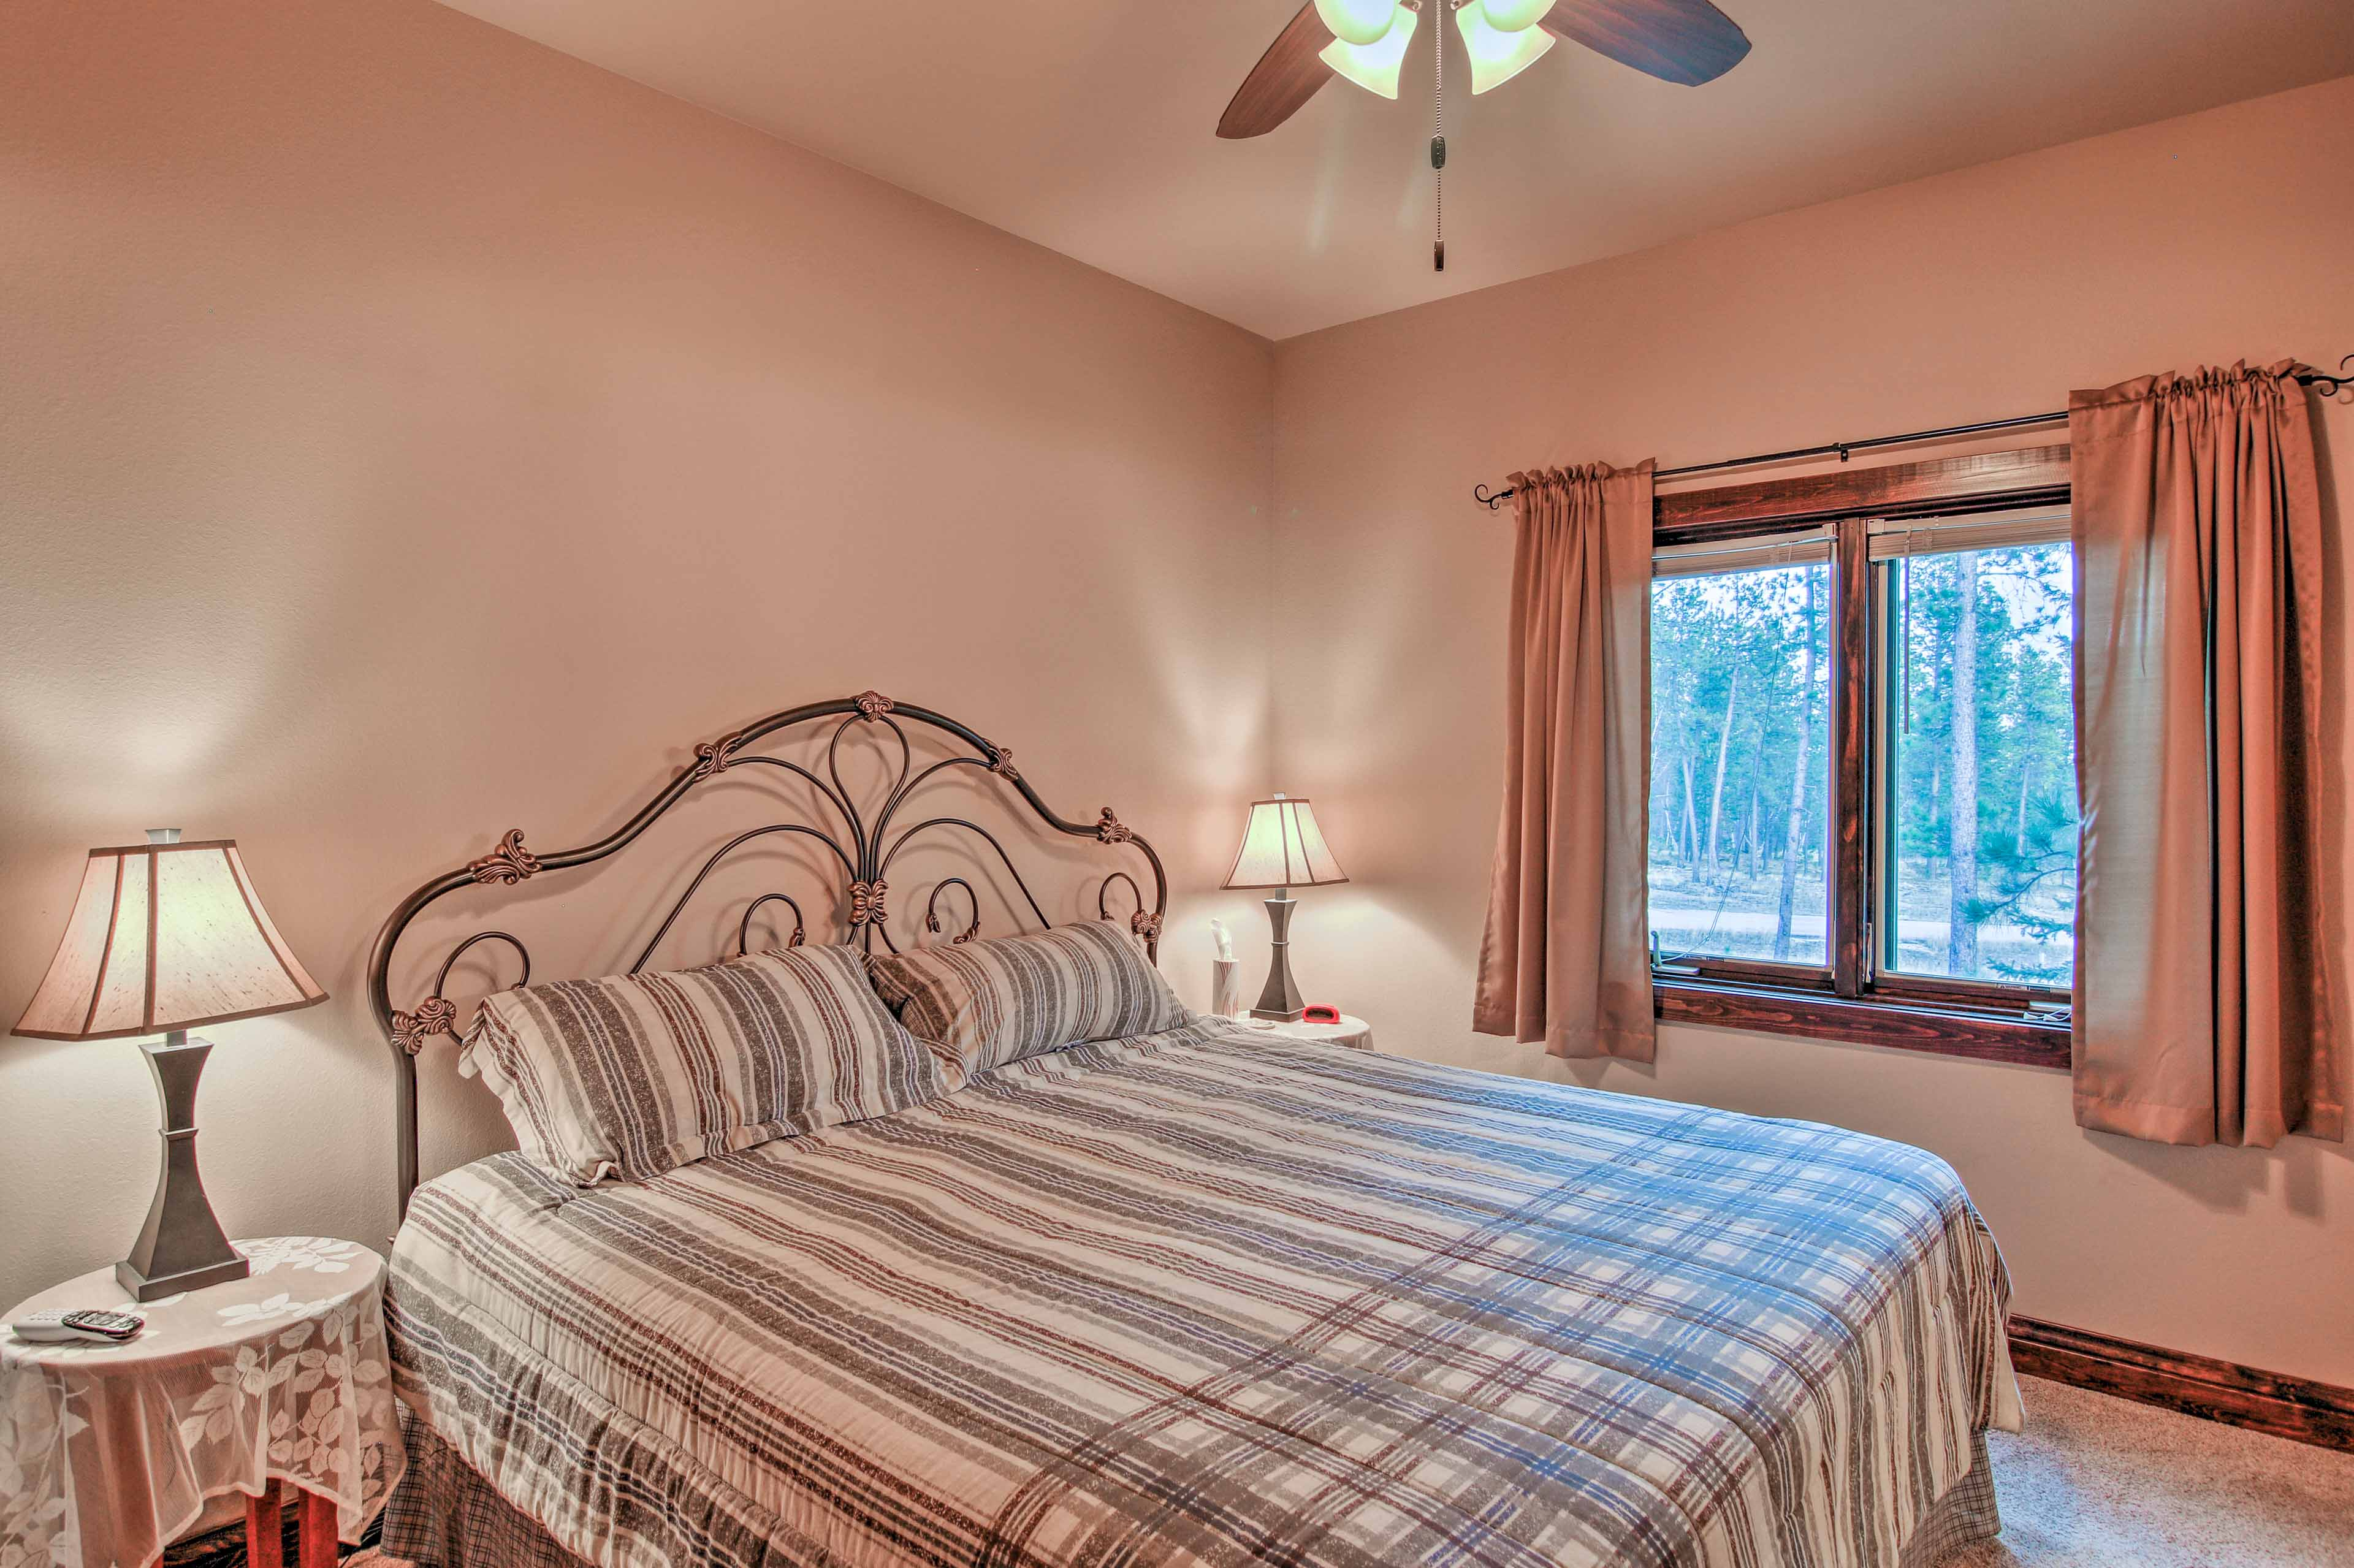 Take in some R&R on the king bed in the master bedroom.